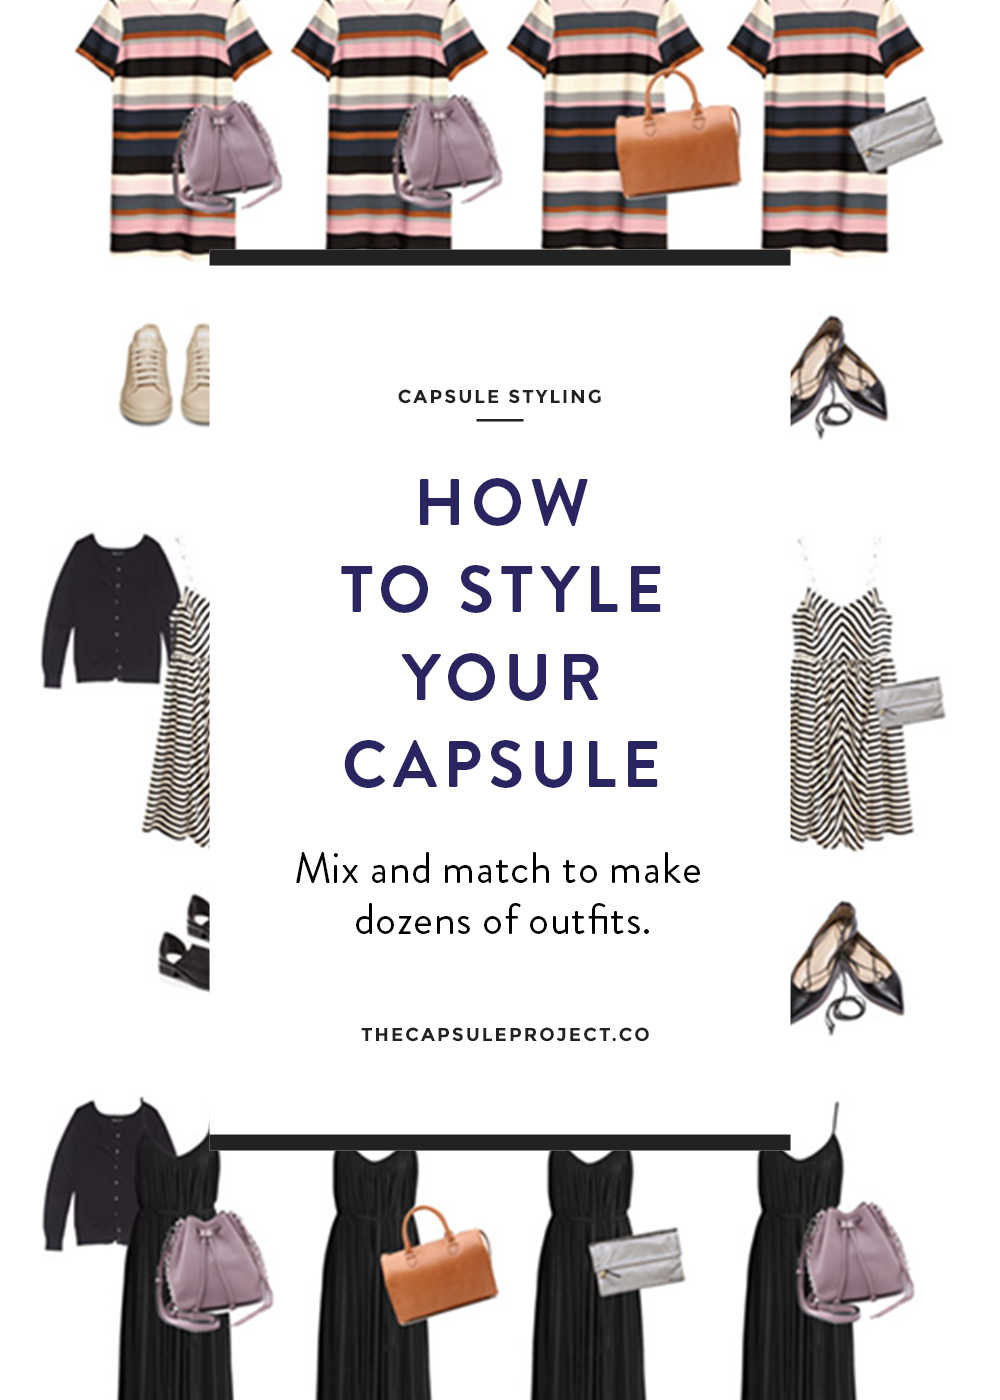 14 Day Summer Capsule Wardrobe - great for trips